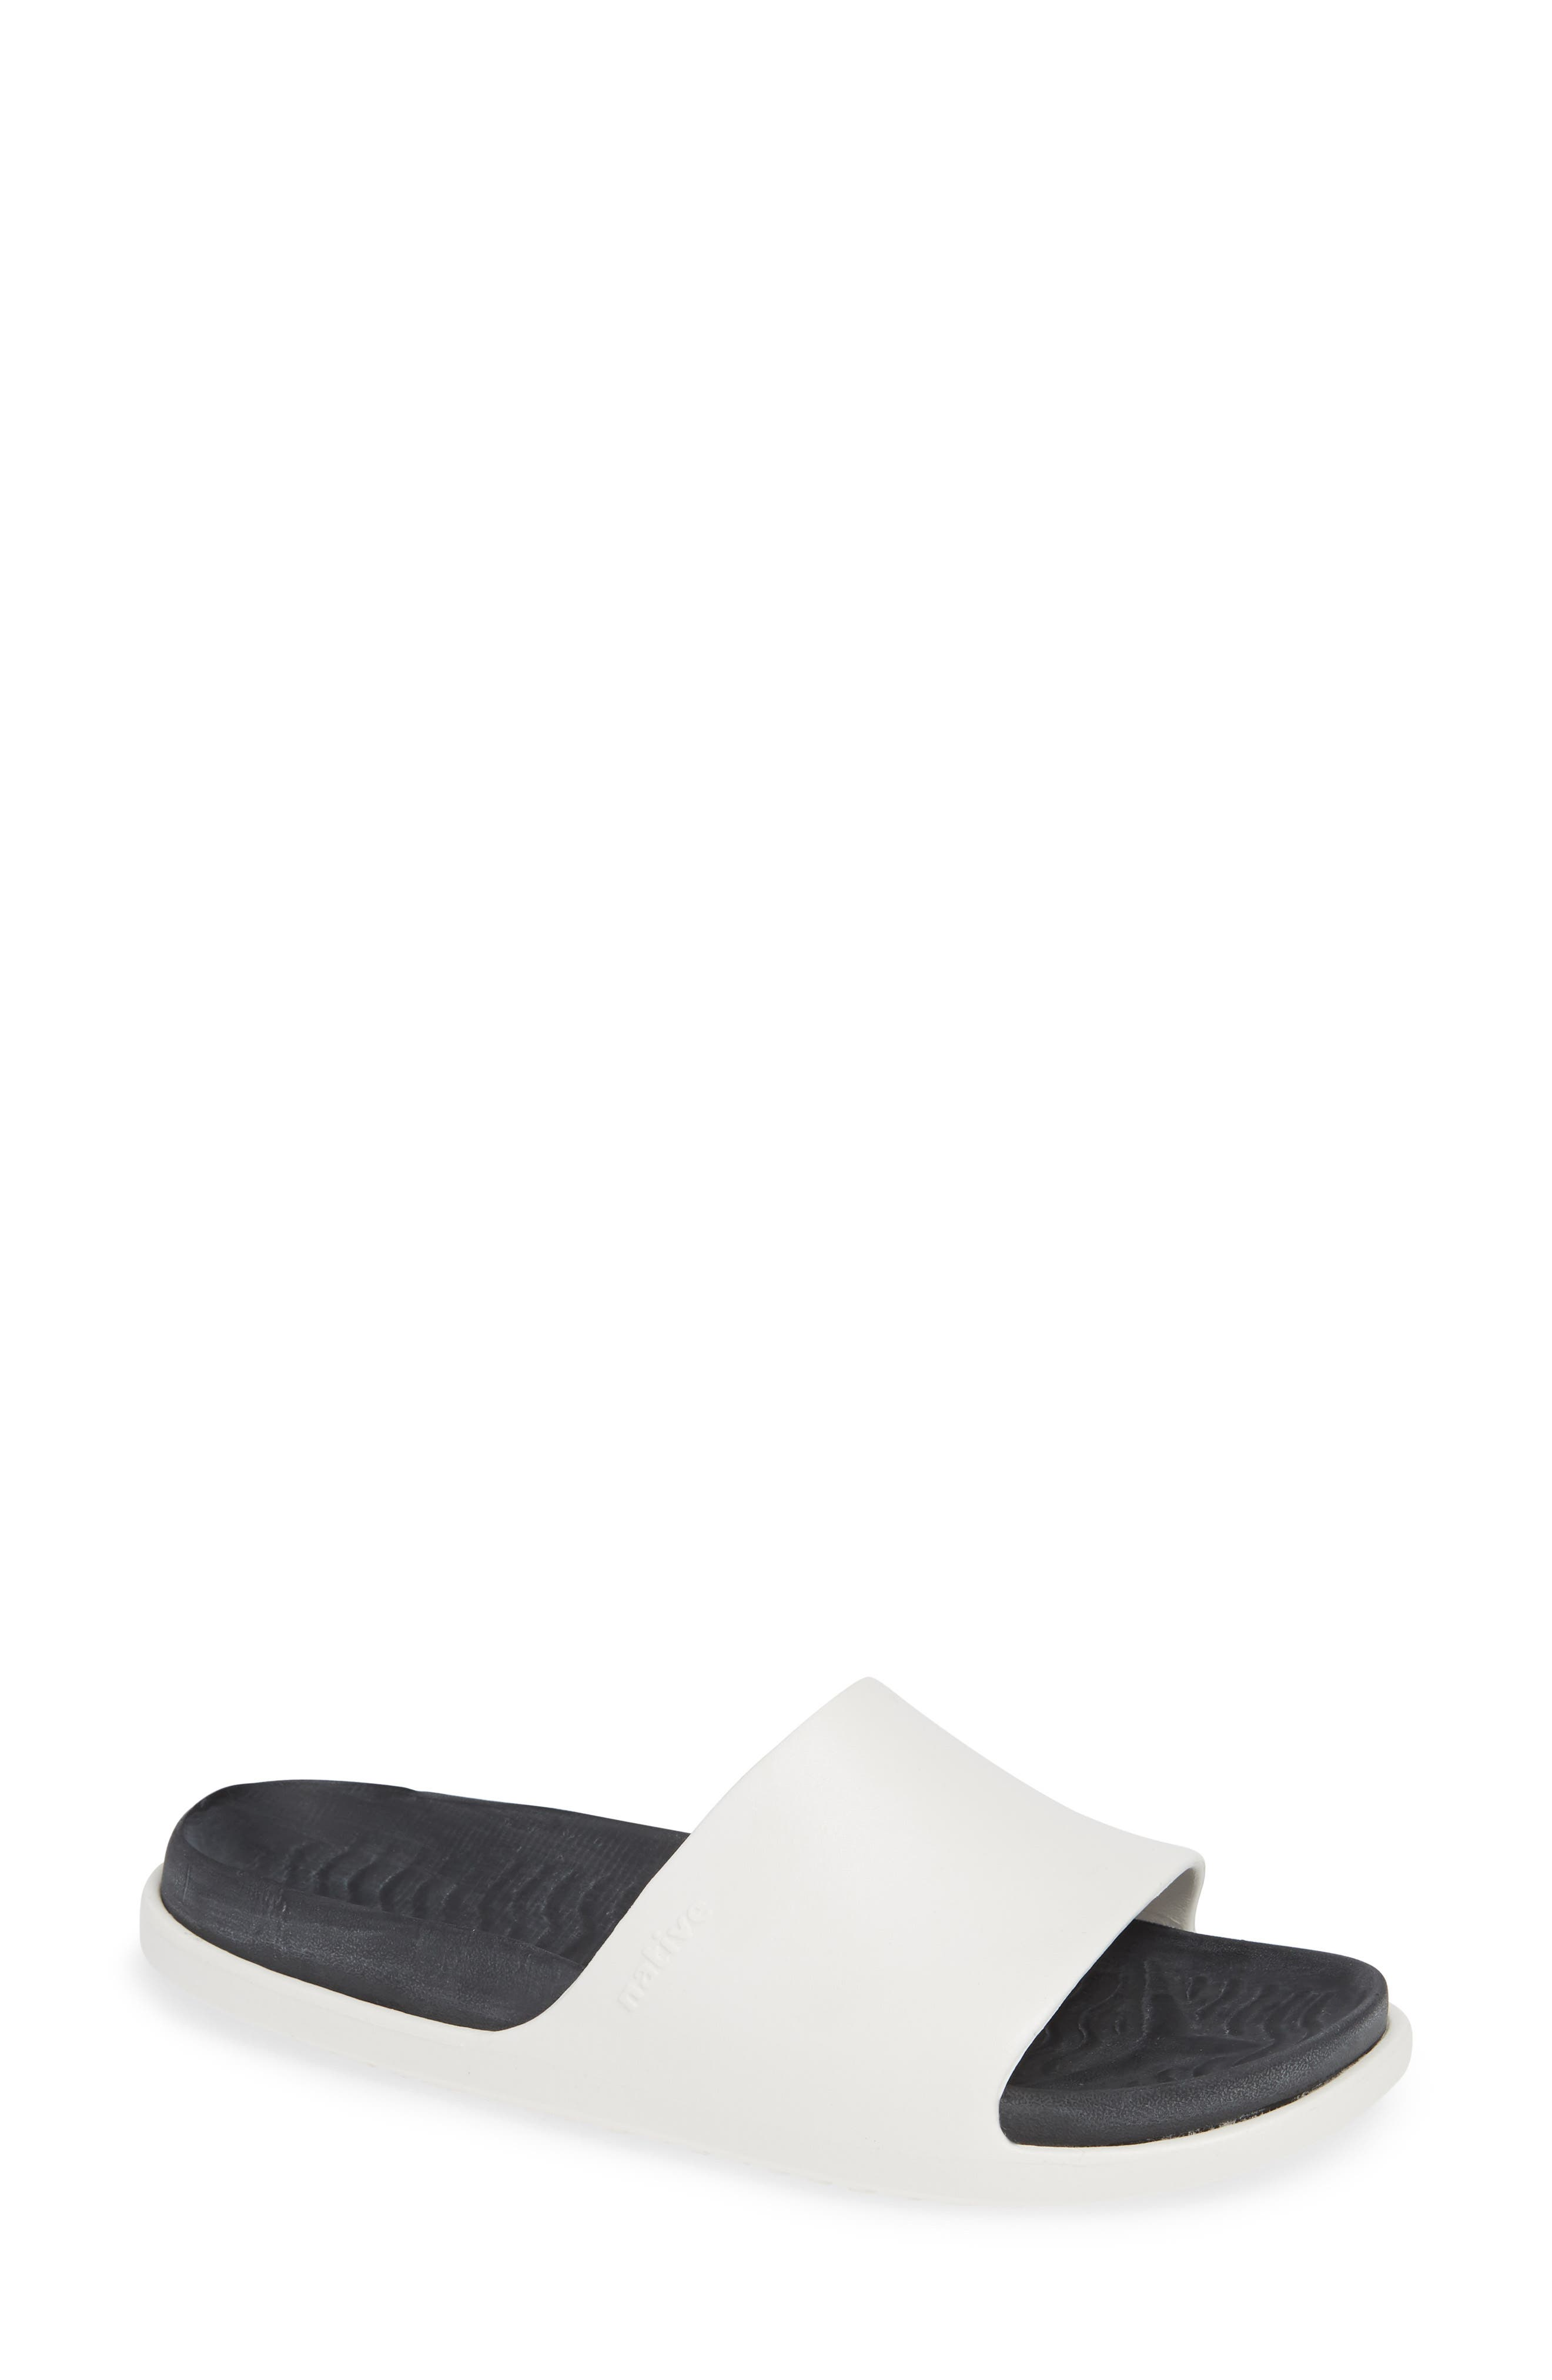 NATIVE SHOES,                             Spencer LX Vegan Sport Slide Sandal,                             Main thumbnail 1, color,                             107